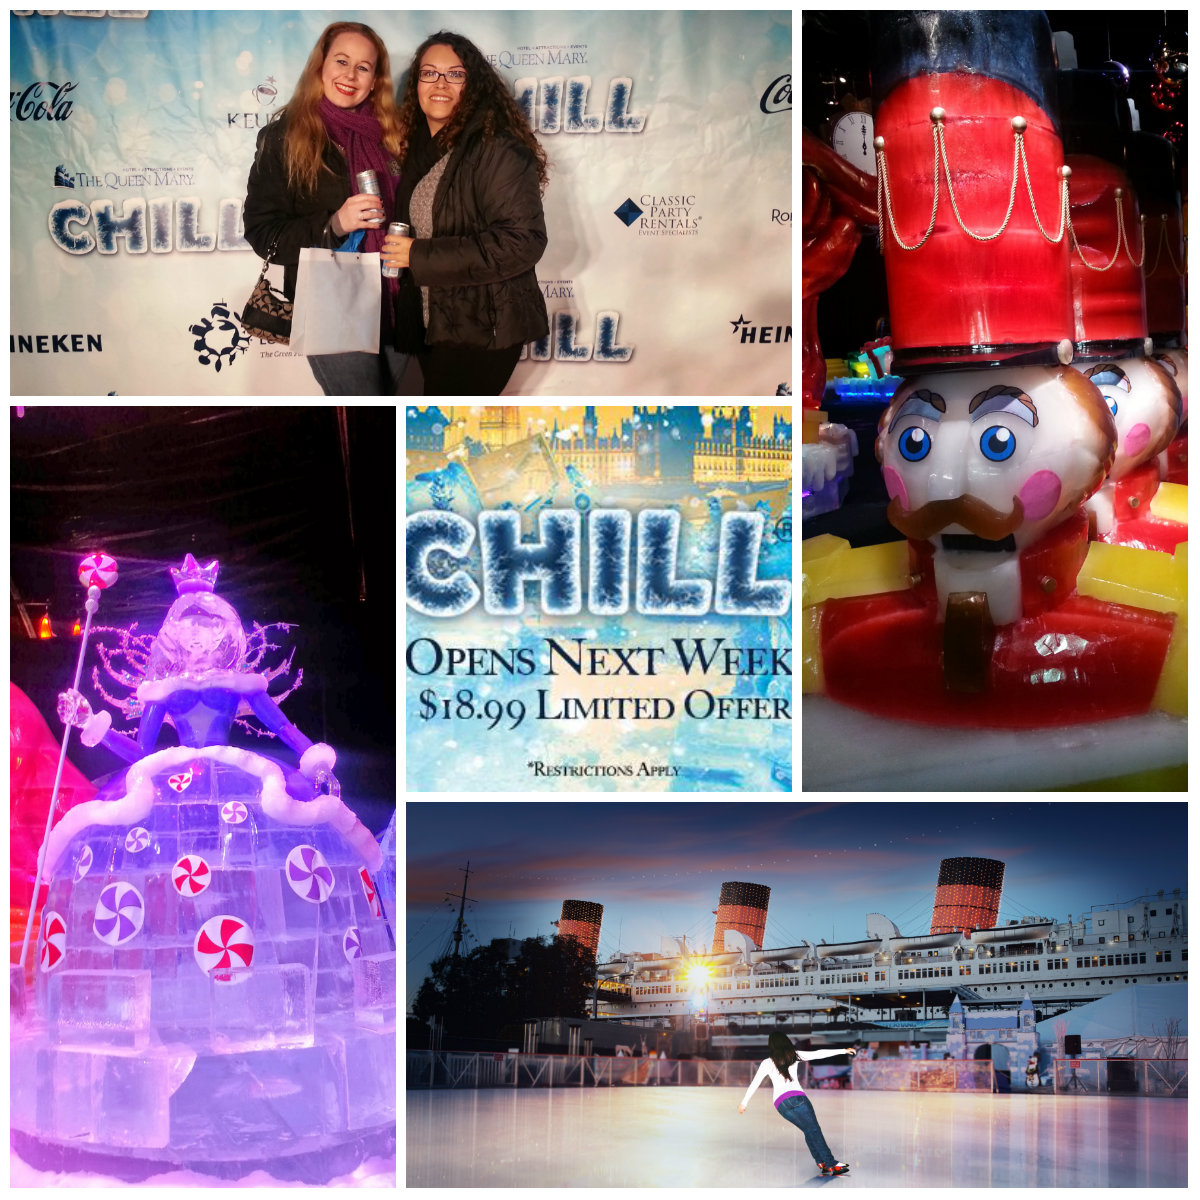 Queen Mary CHILL, discount code, promo code